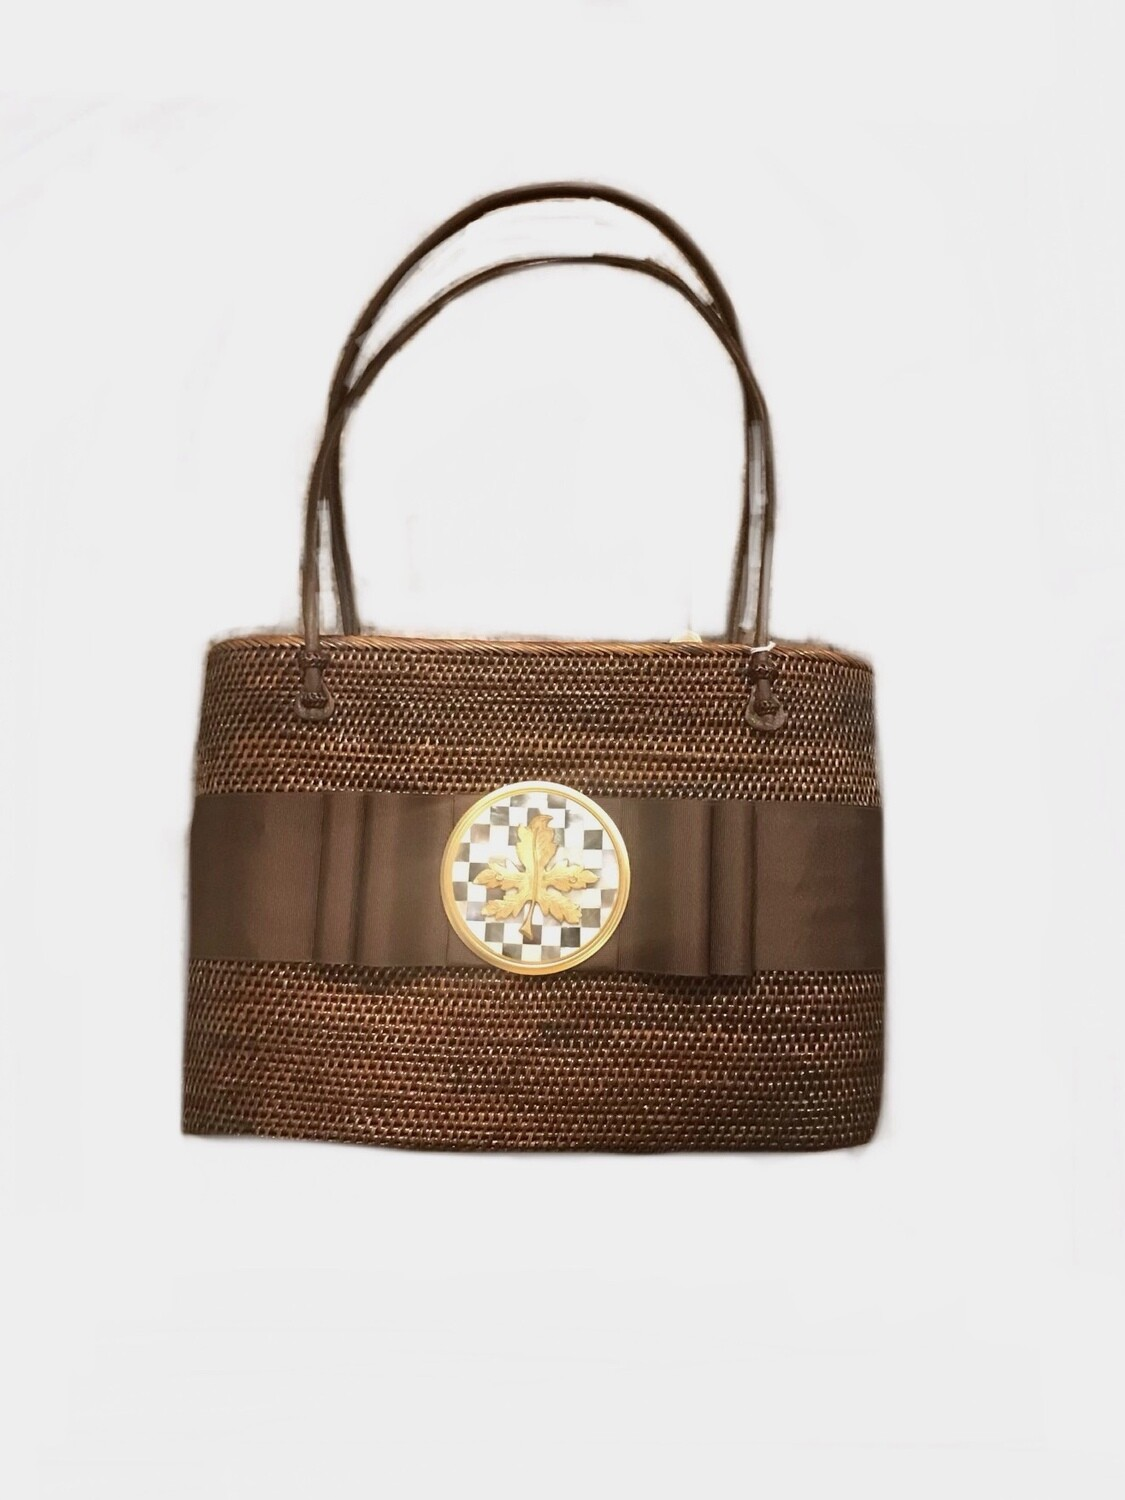 Straw bag brown with leaf medallion